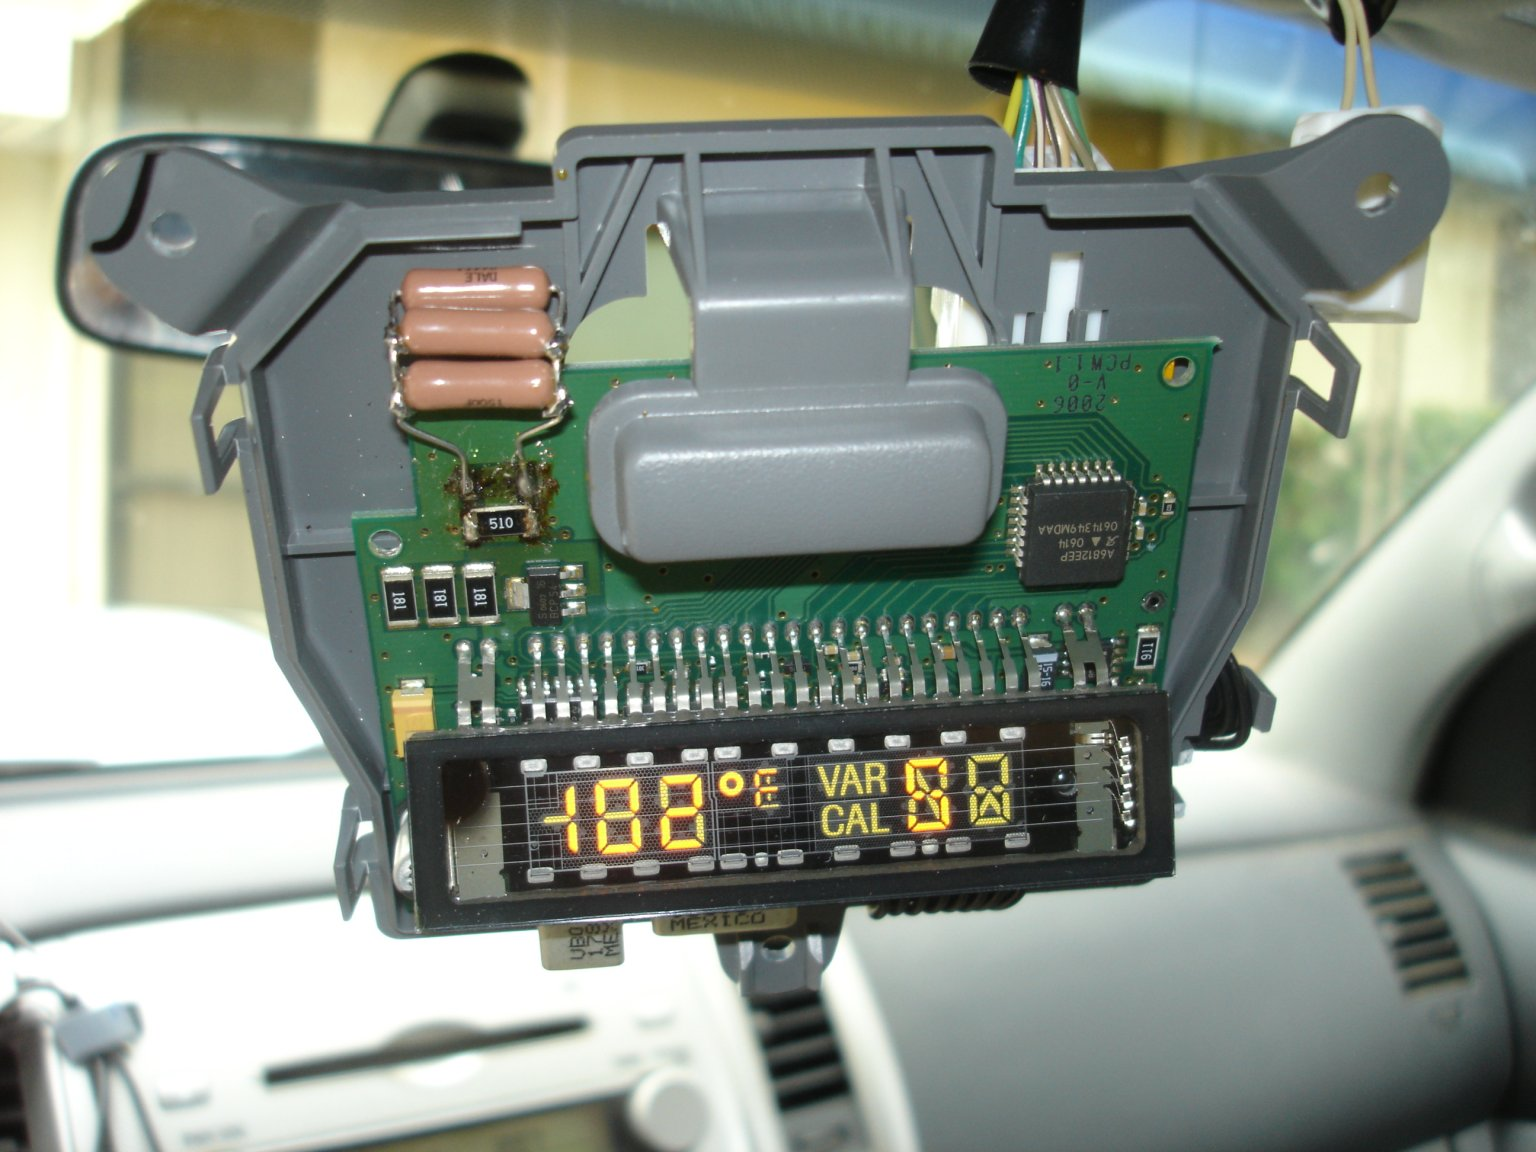 2006 Tacoma Overhead Console Wiring Diagram Schematic Diagrams How I Repaired My Toyota Temperature Compass Display